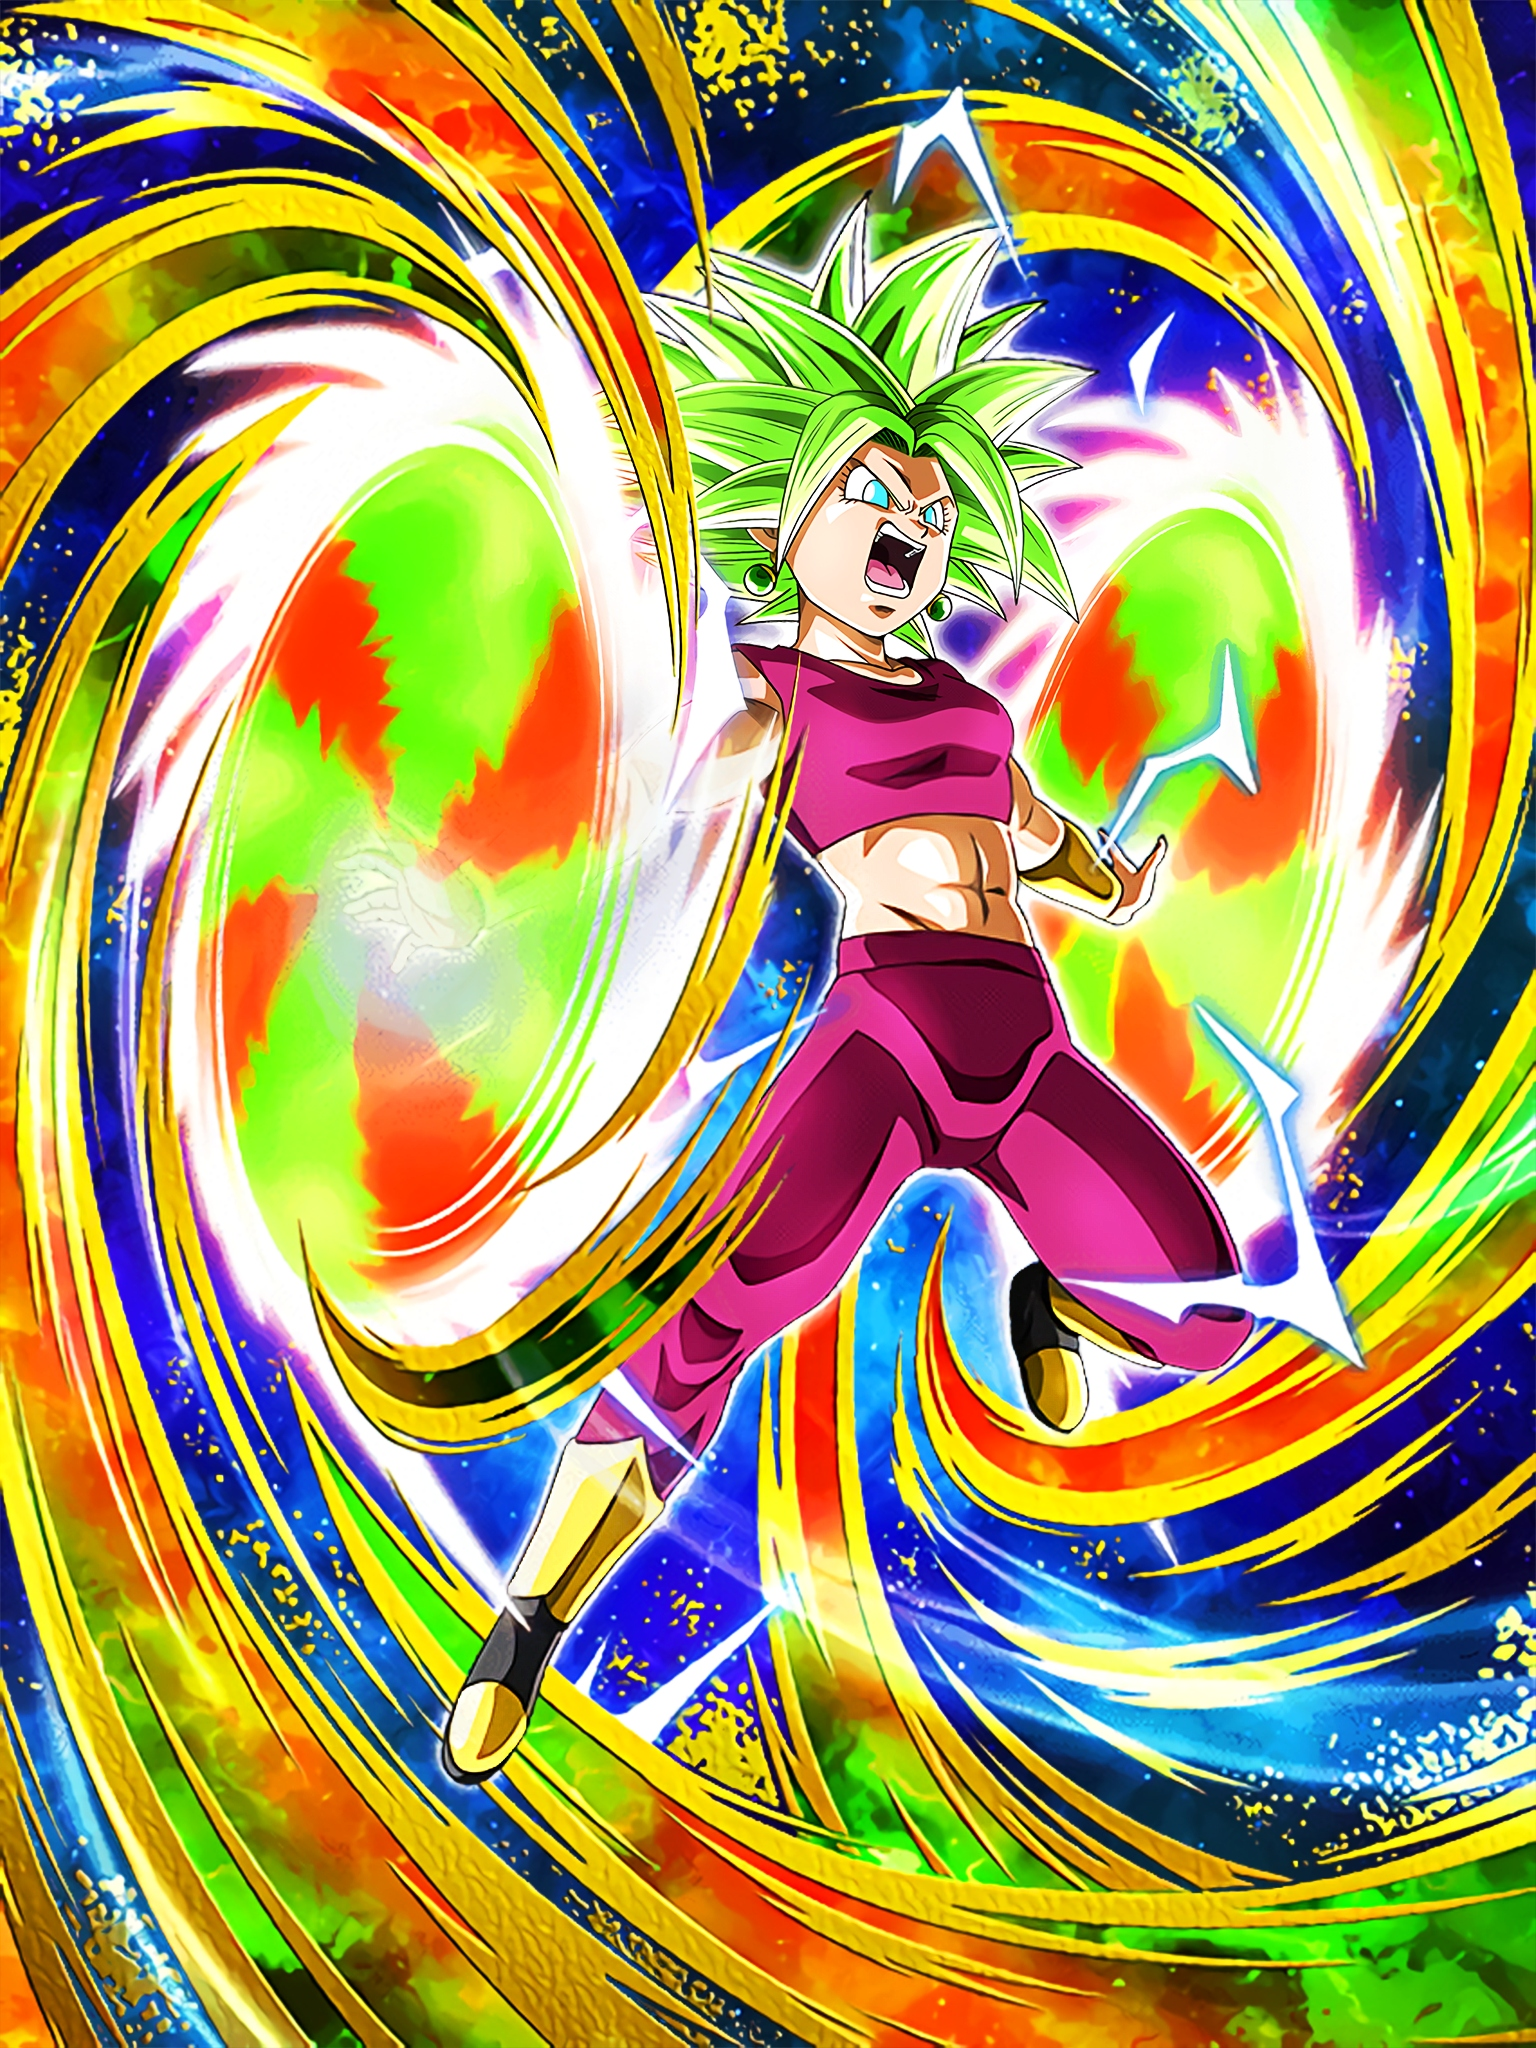 Kefla Dokkan Awakening Art (Dragon Ball Z Dokkan Battle)